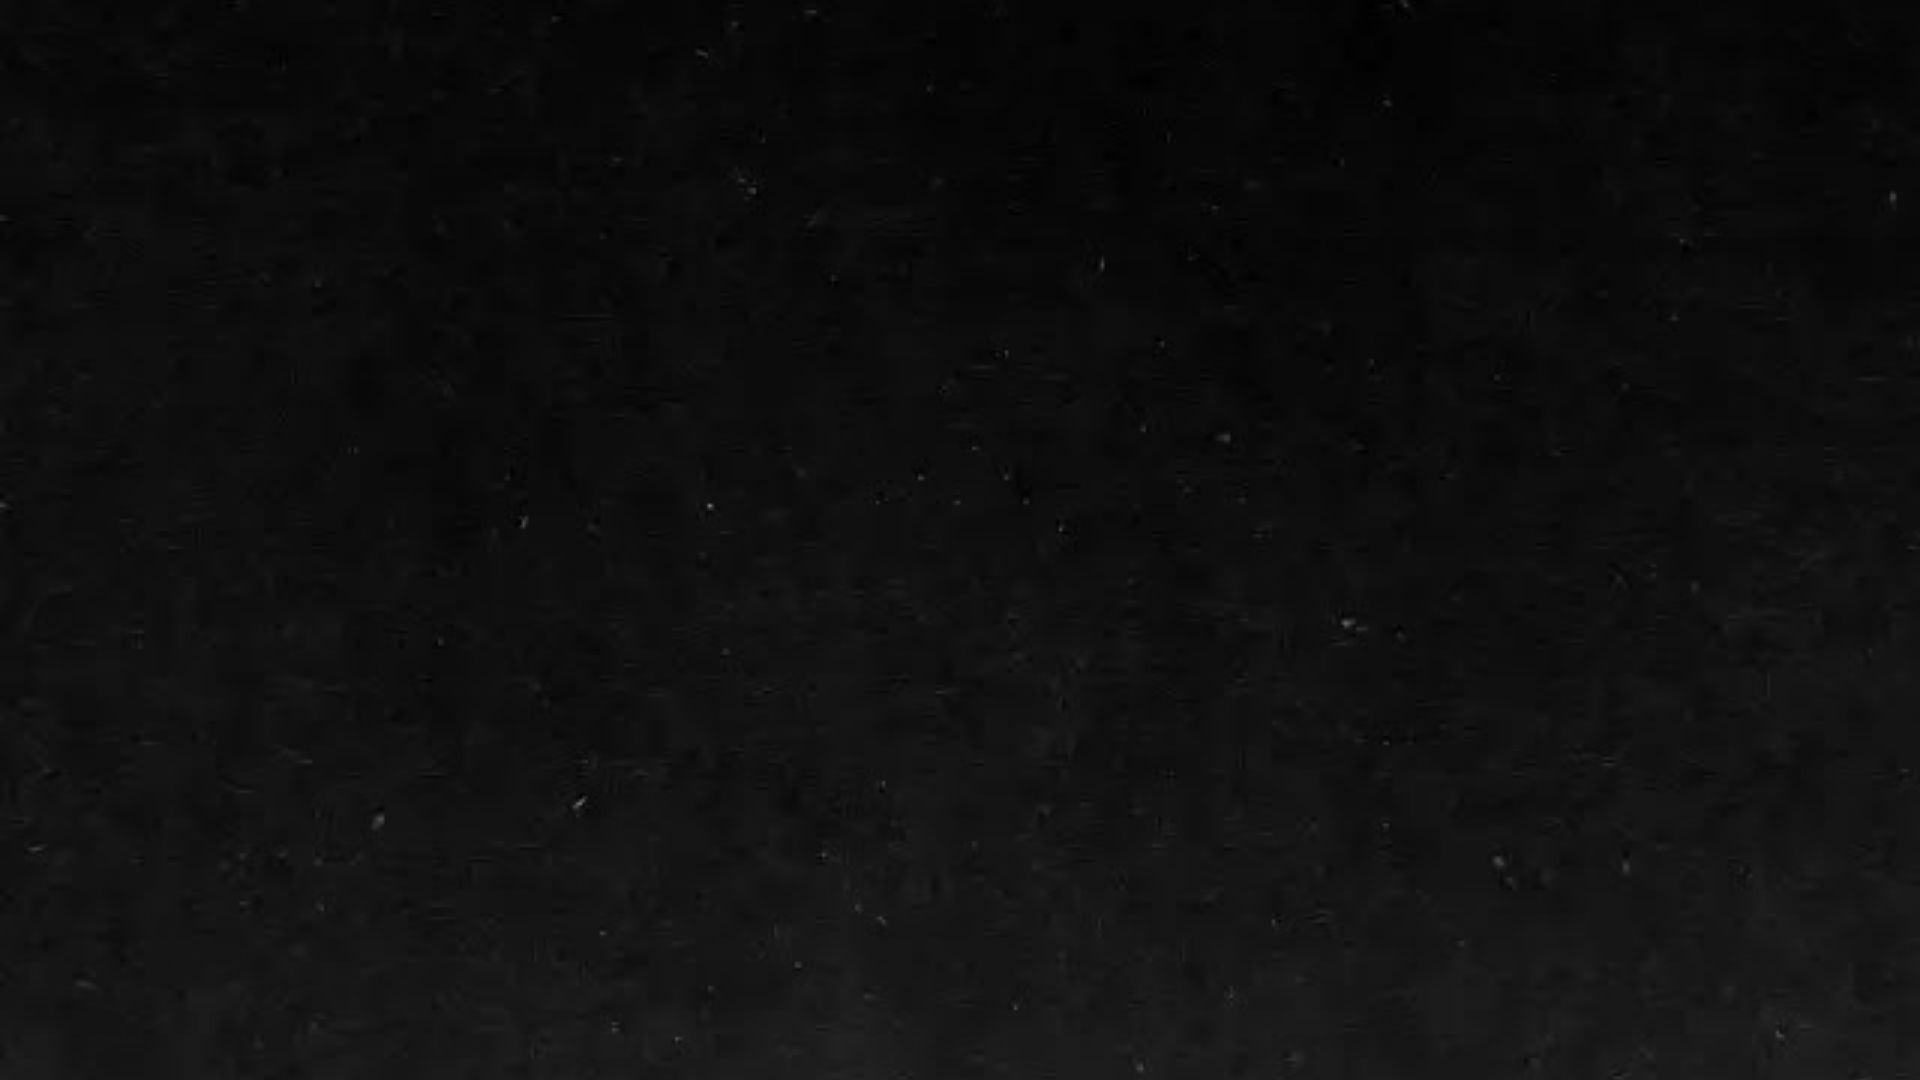 black wallpaper with stars-1